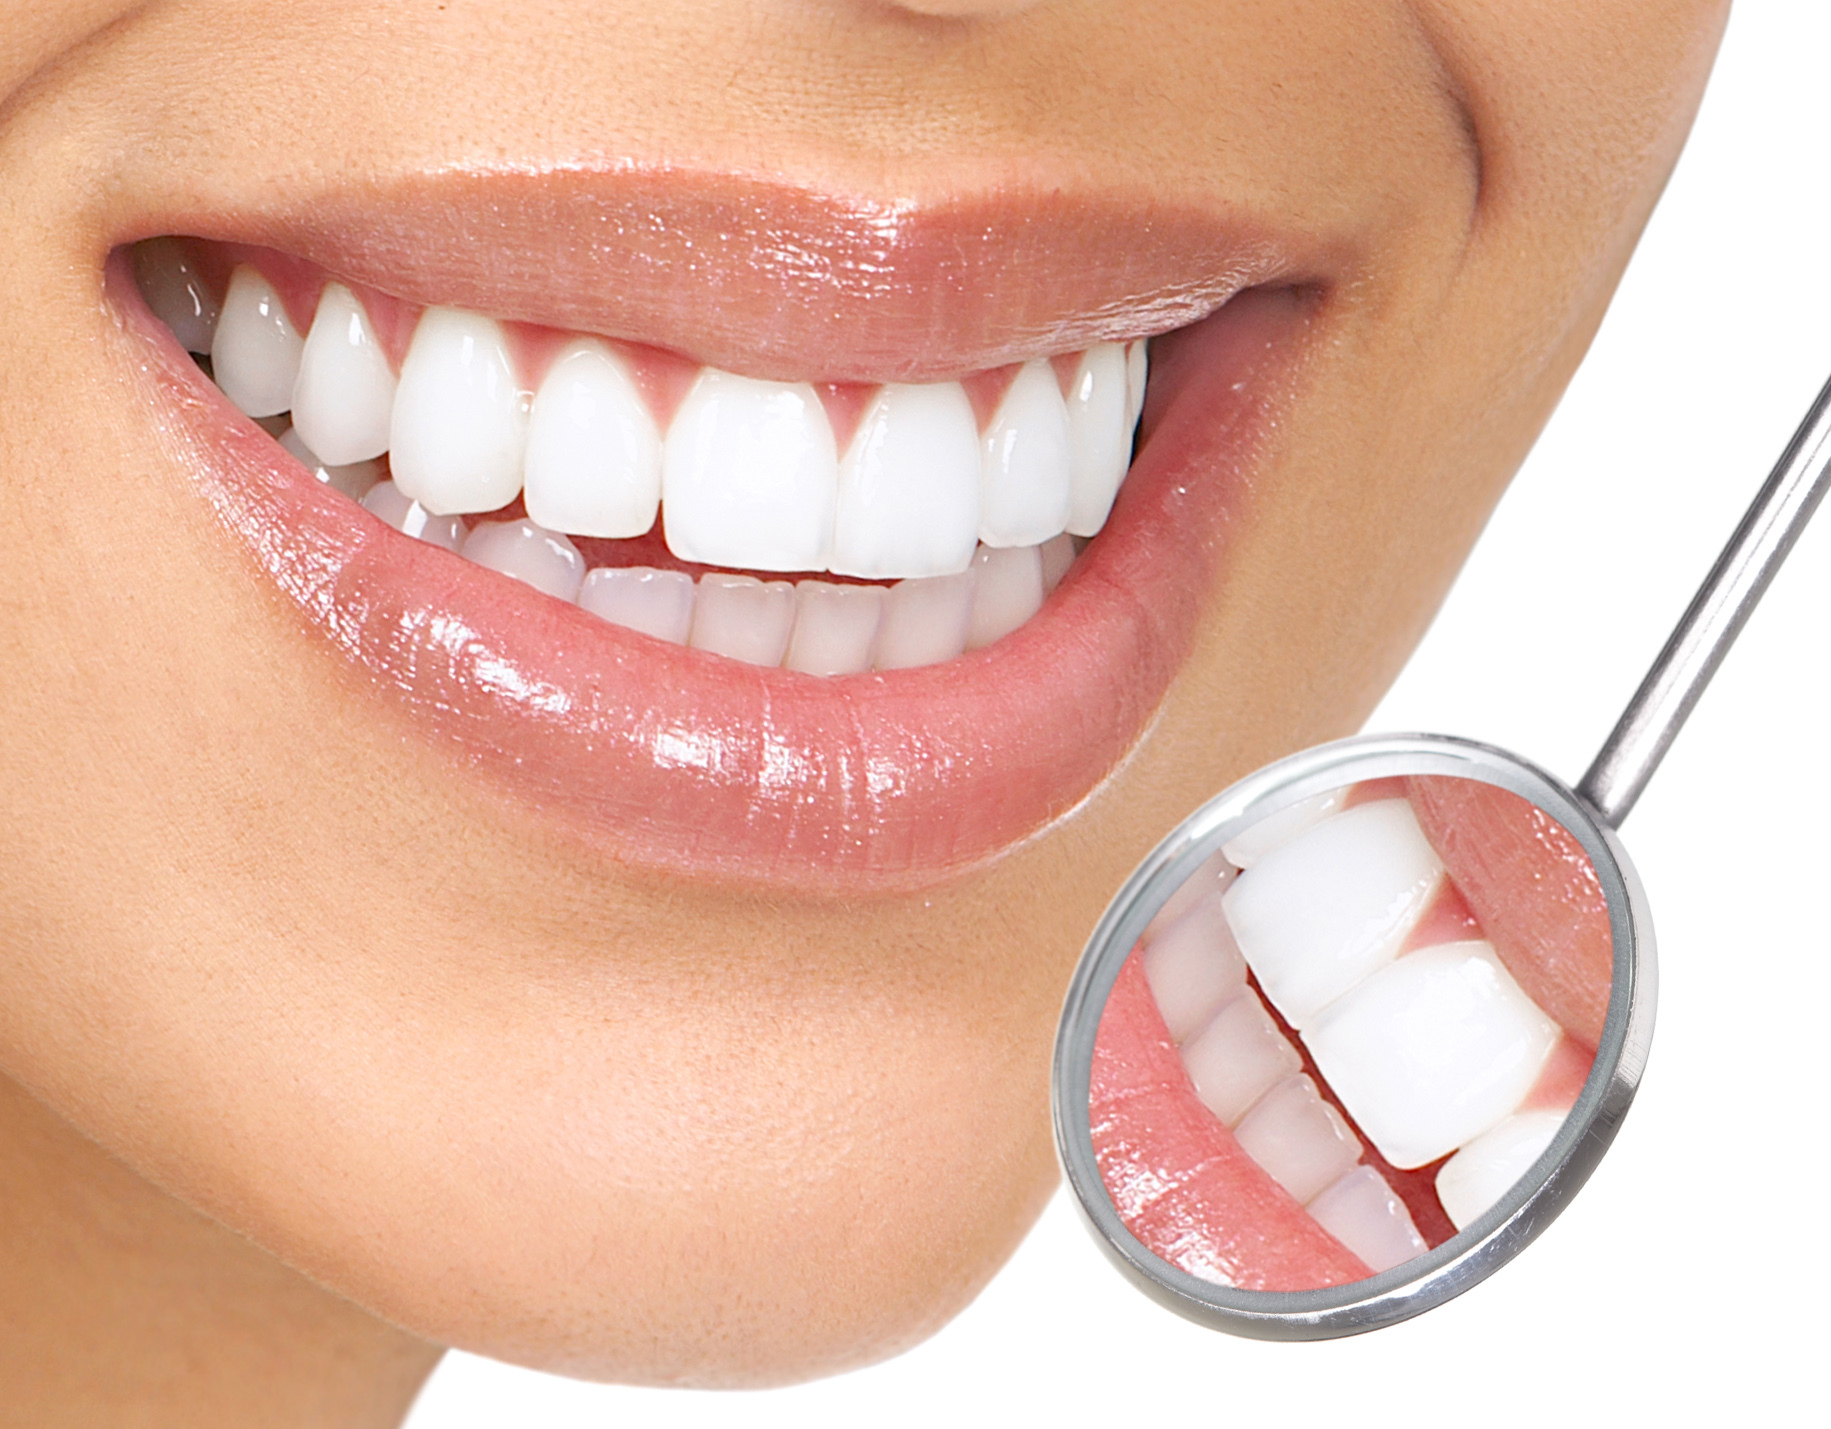 Tips for Healthy Mouth